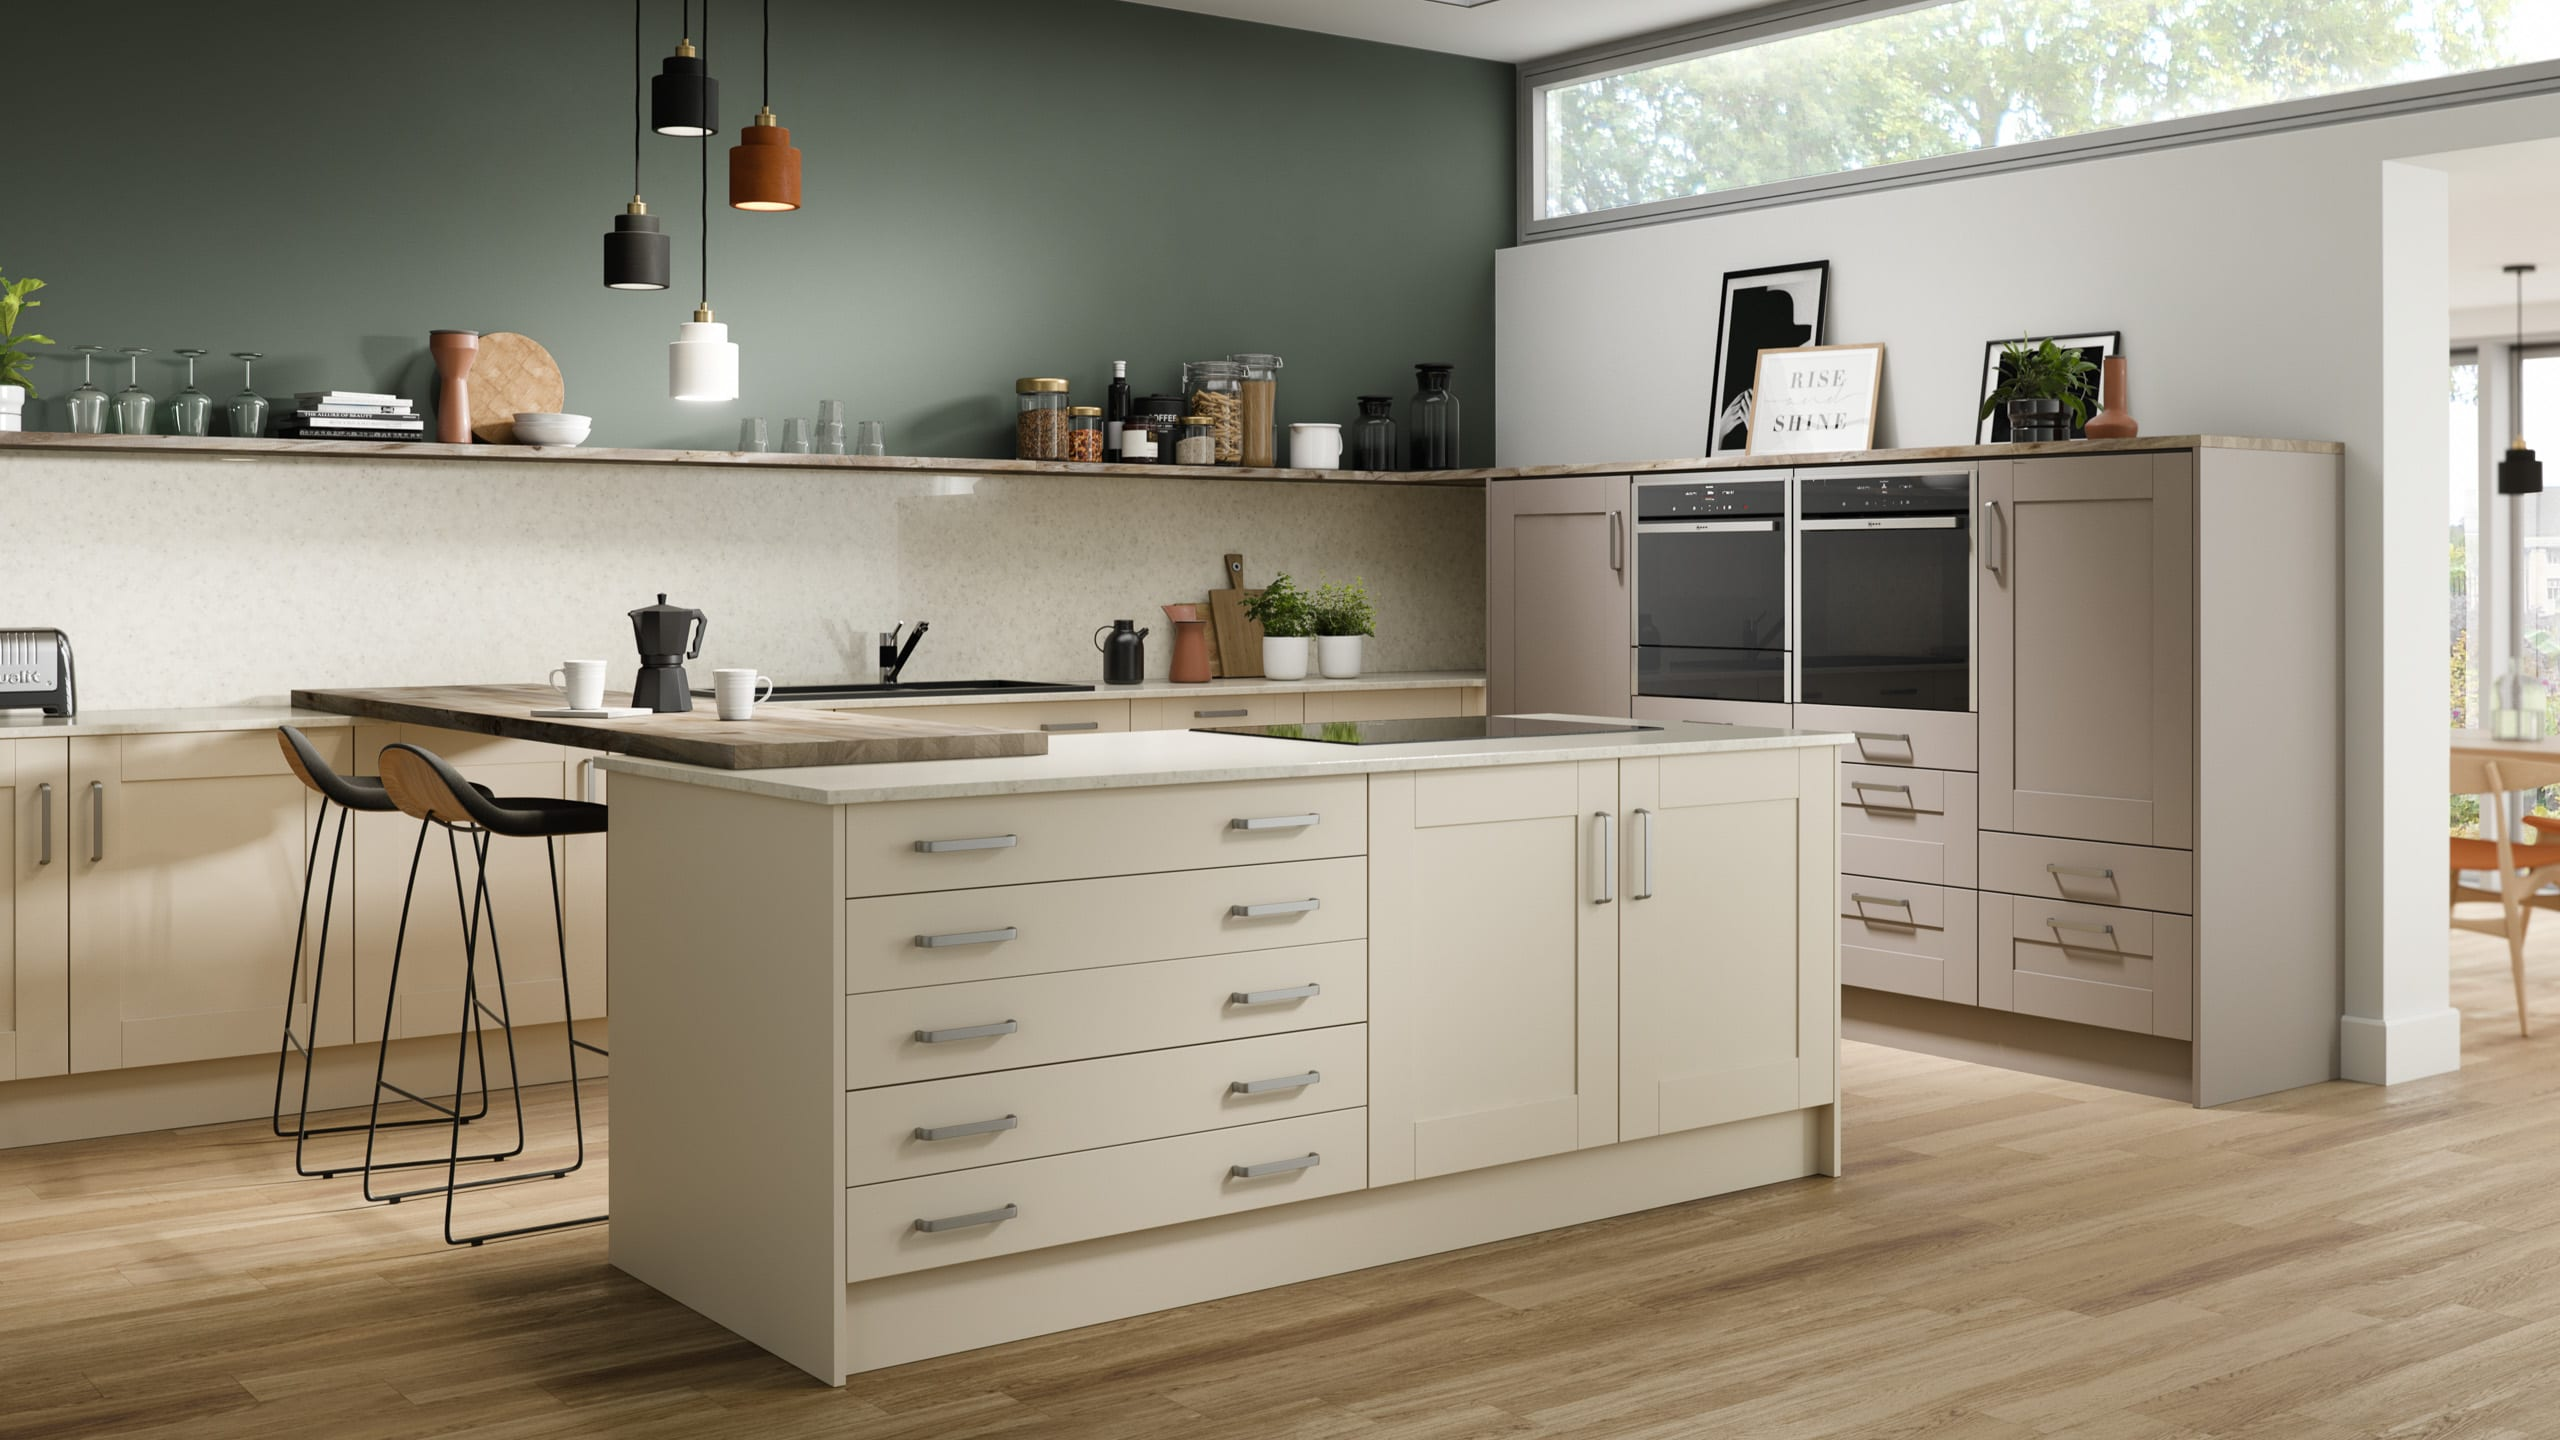 Painted Ivory - Cashmere - kitchen